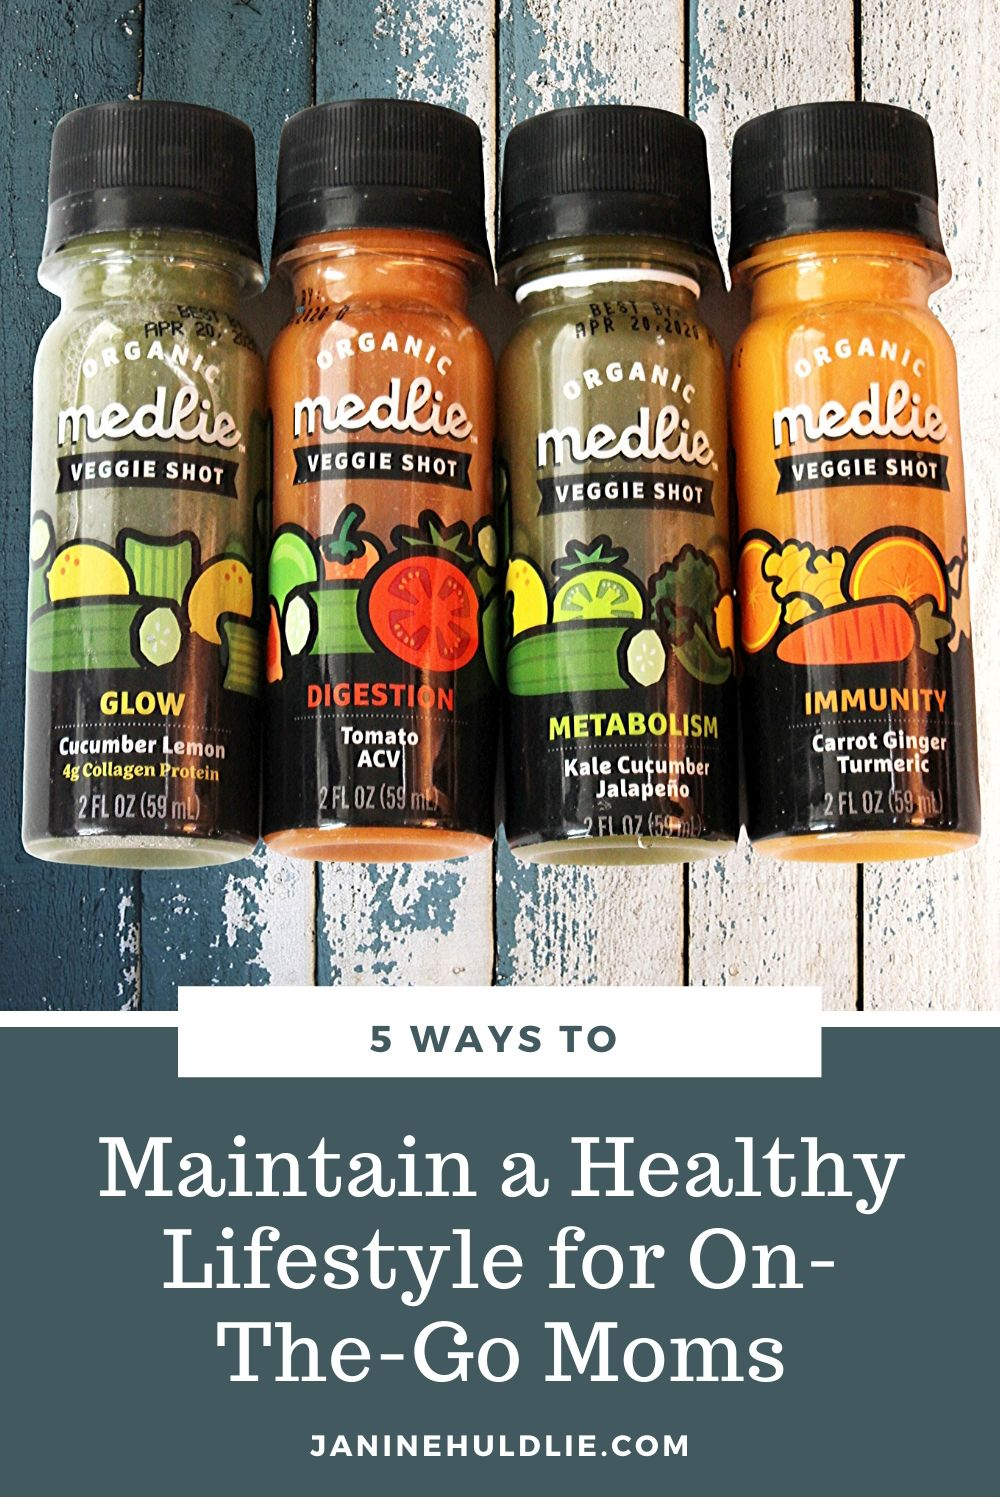 How to Maintain a Healthy Lifestyle for On-The-Go Moms